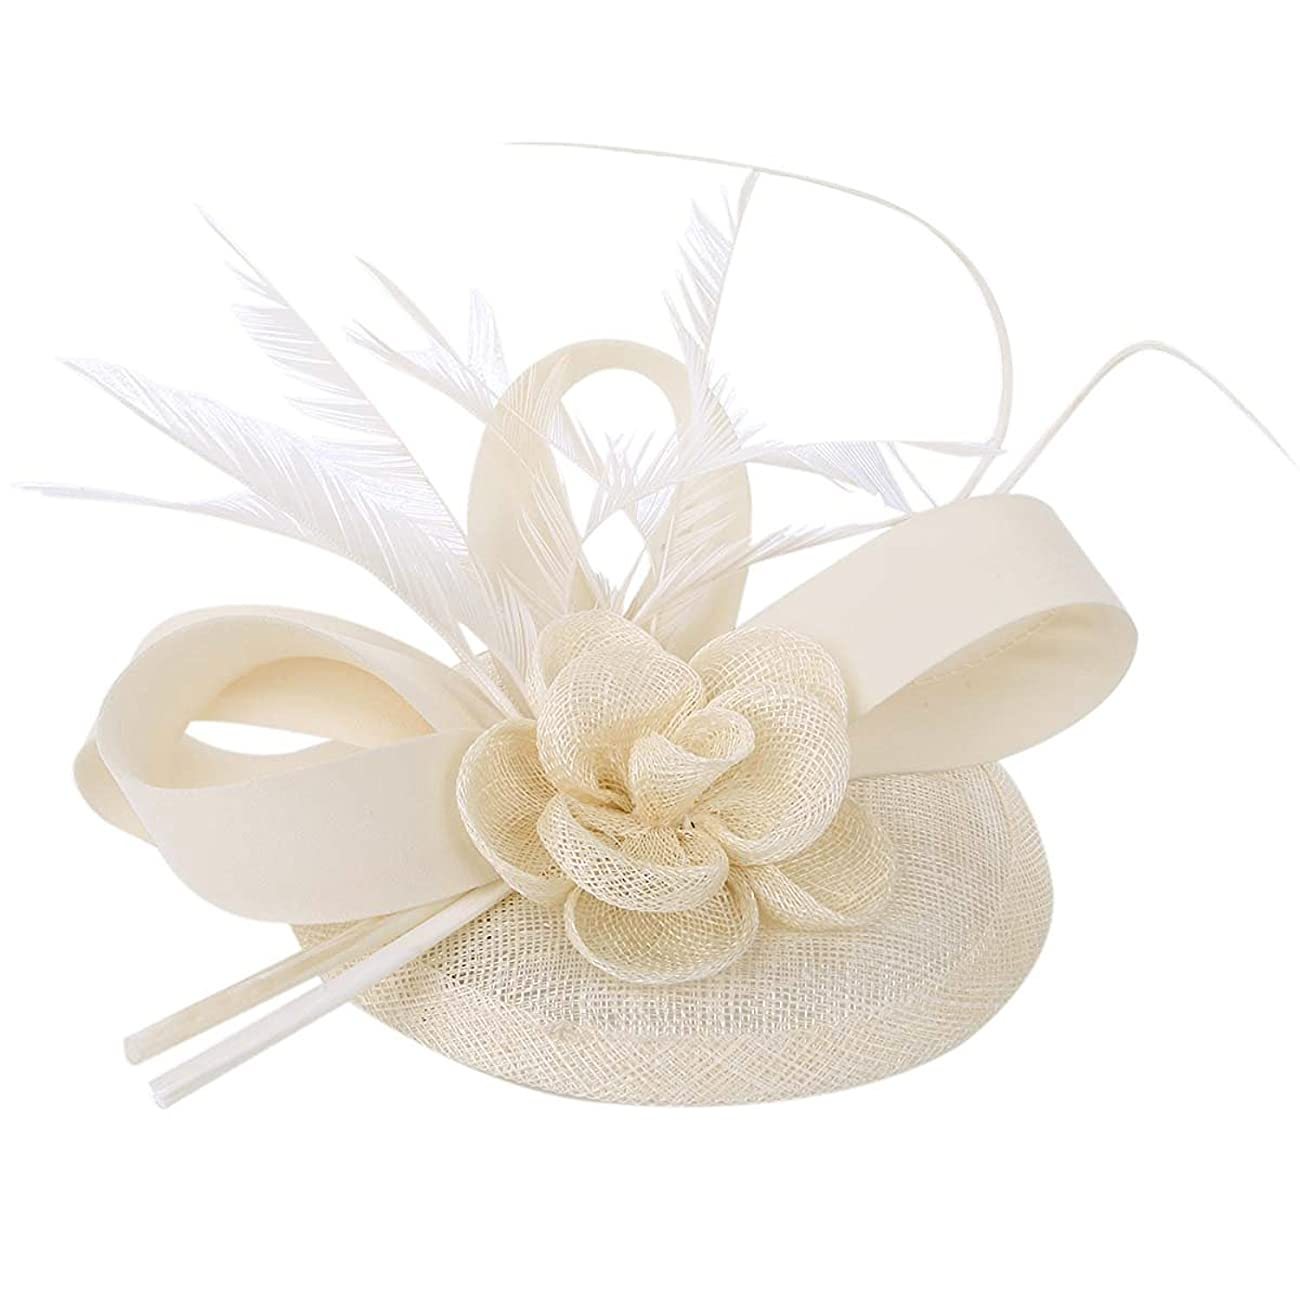 Cocktail Pillbox Hat Fascinator Hair Clip Bridal Headwear for Women 1